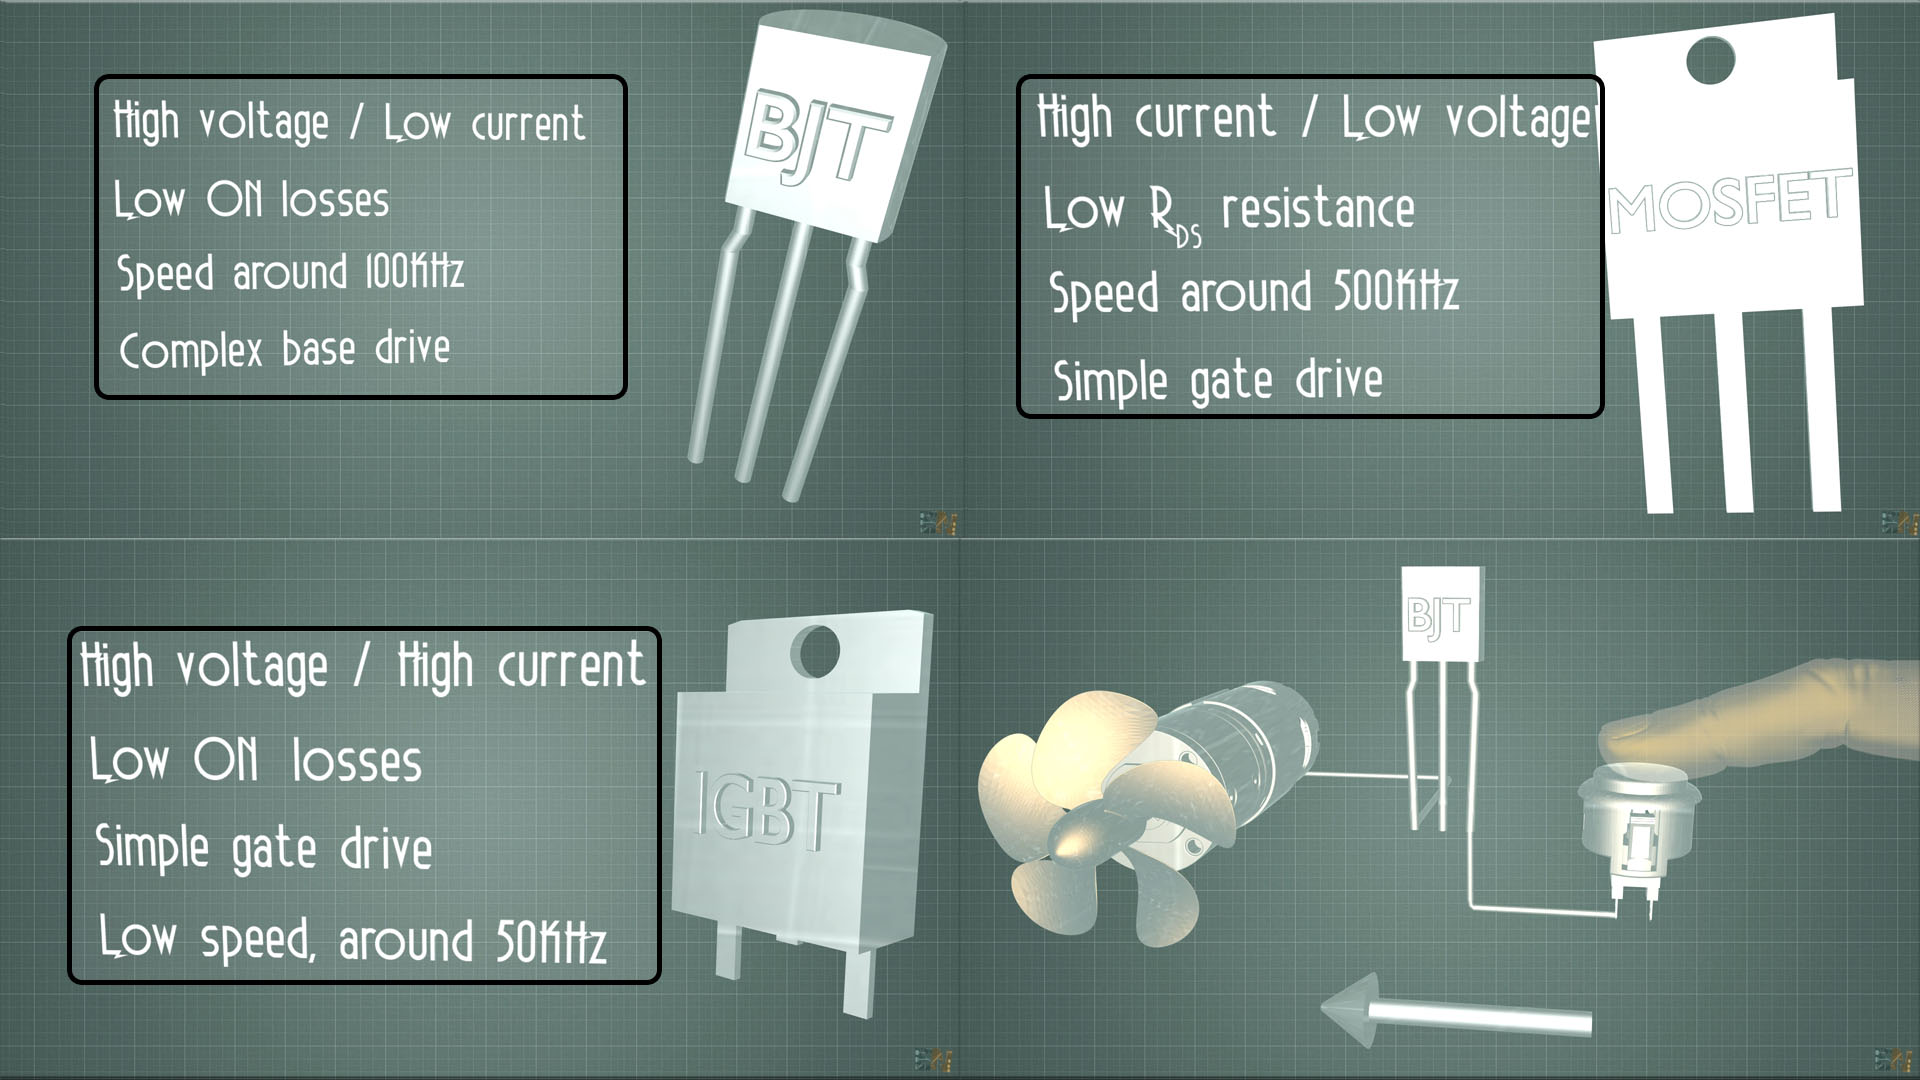 frequency compare MOSFET BJT IGBT